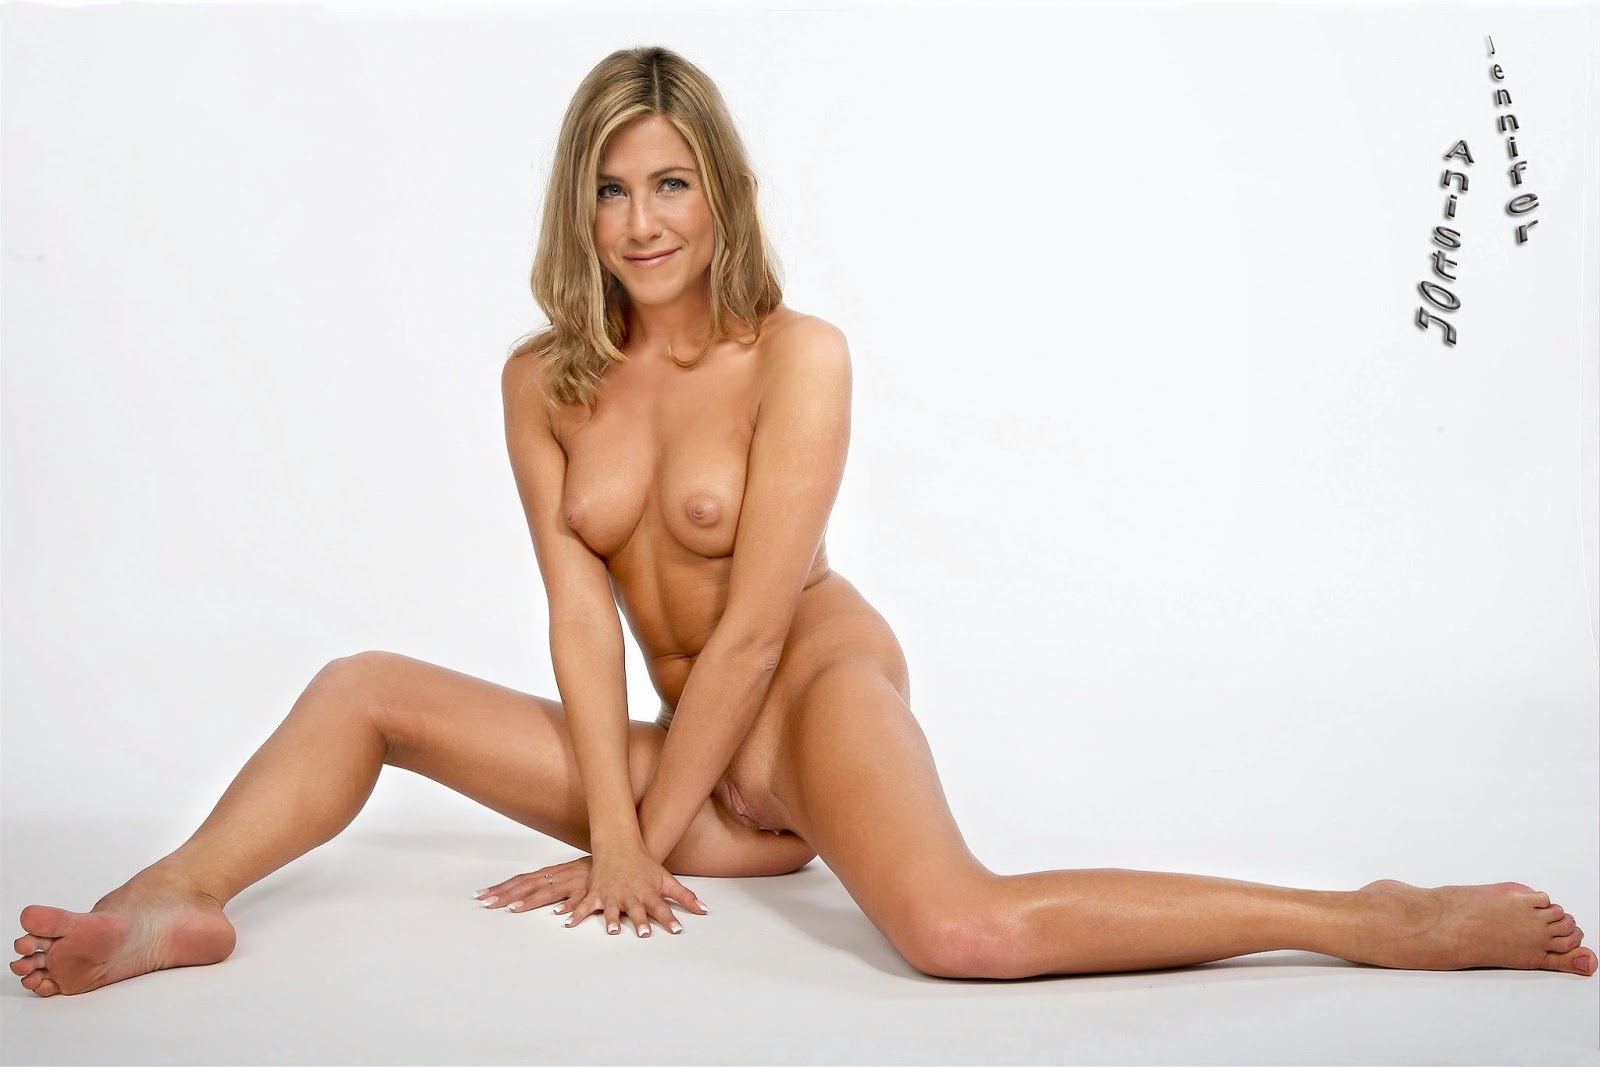 nude for charity calendar